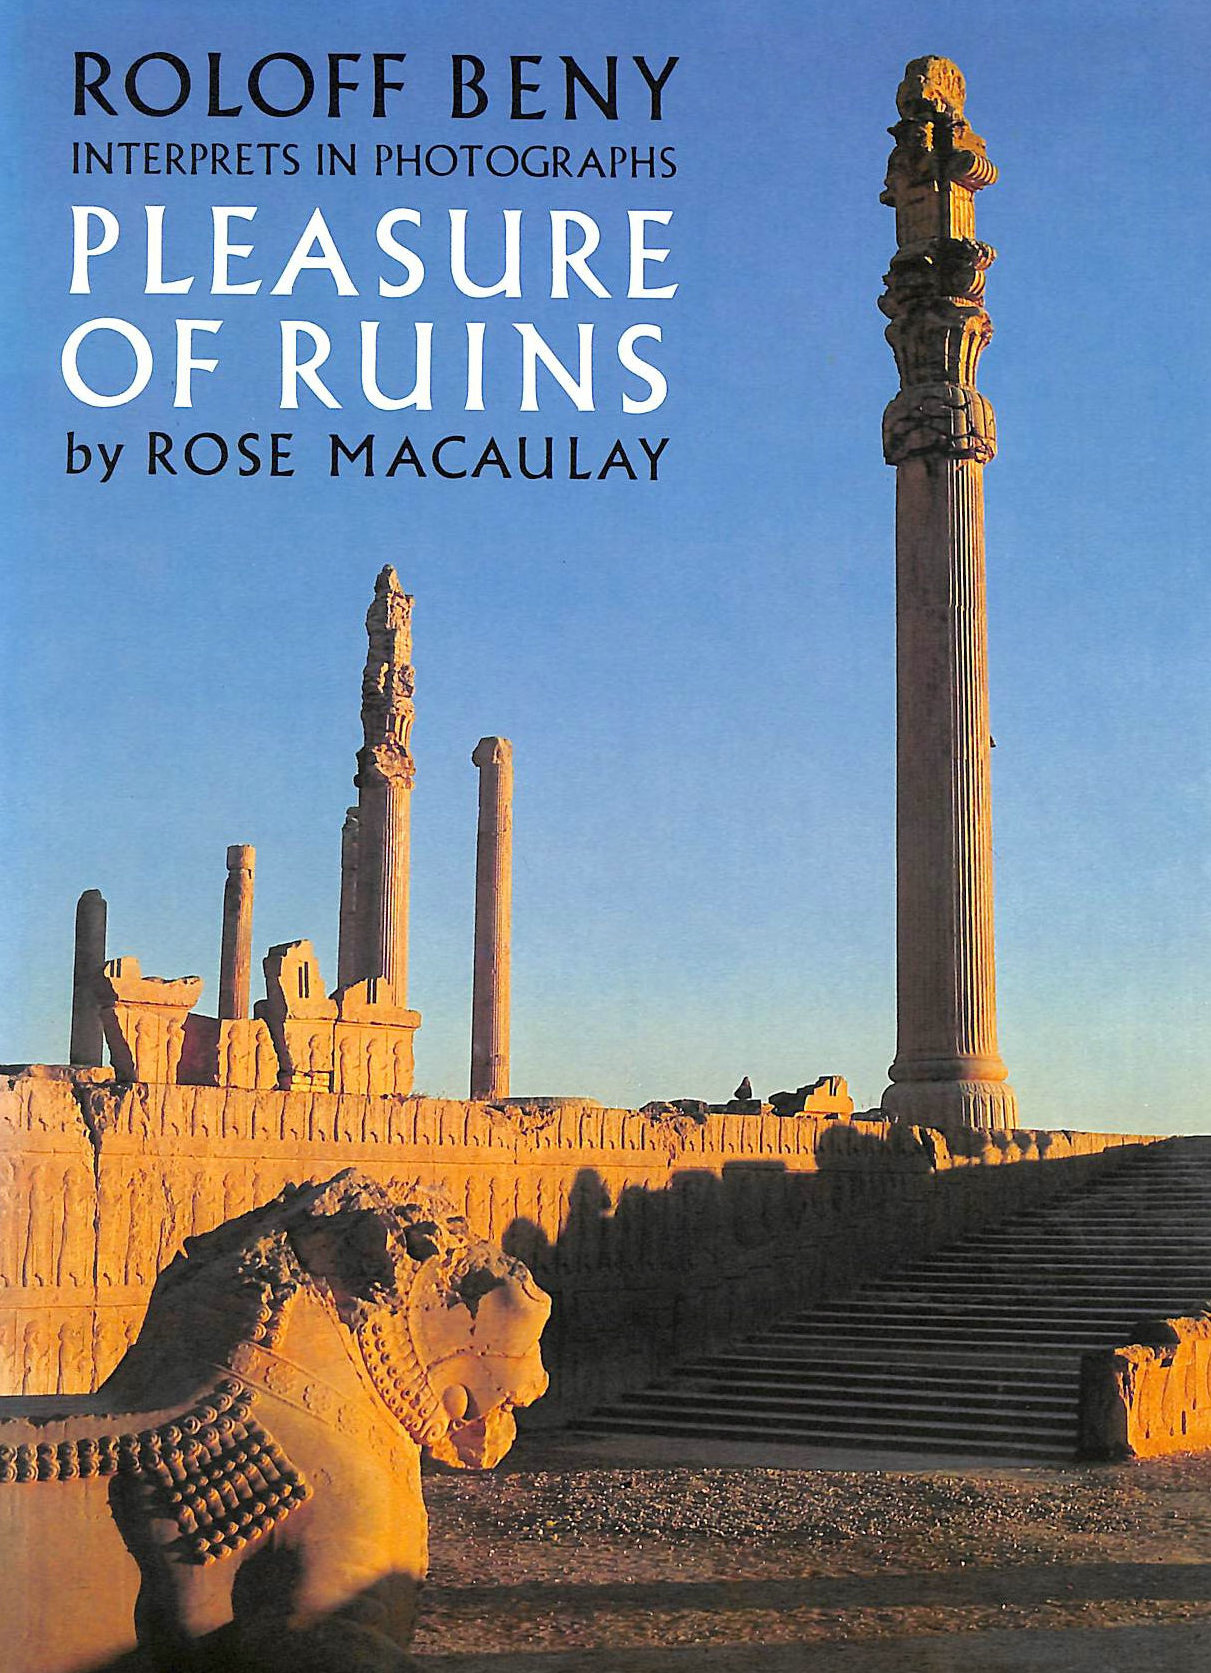 Image for Roloff Beny Interprets in Photographs Pleasure of Ruins